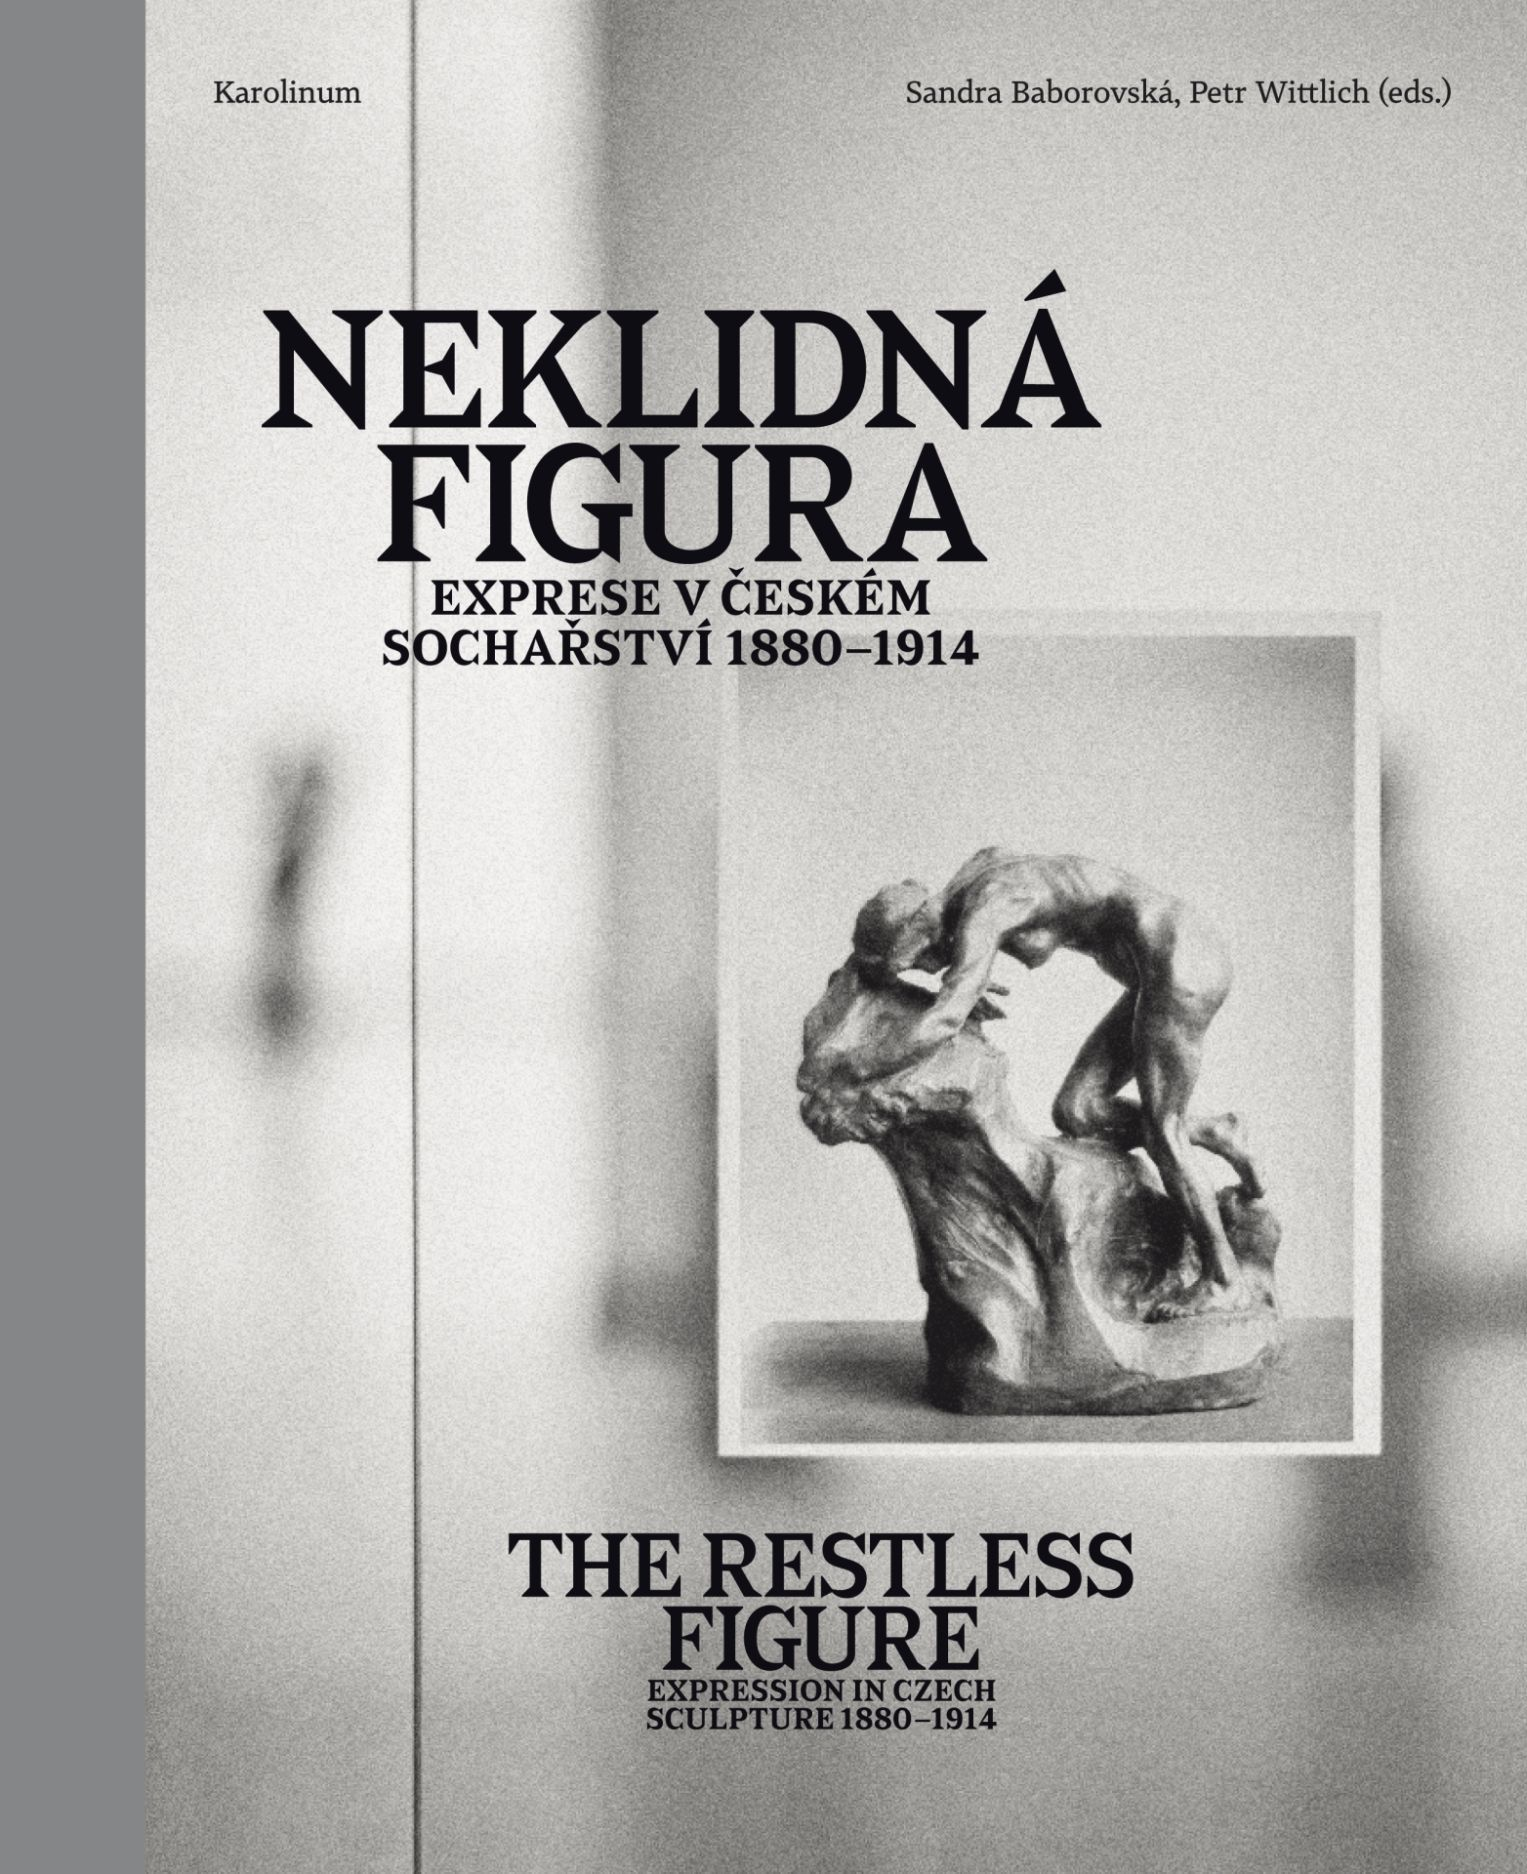 The Restless Figure: Expression in Czech Sculpture 1880–1914